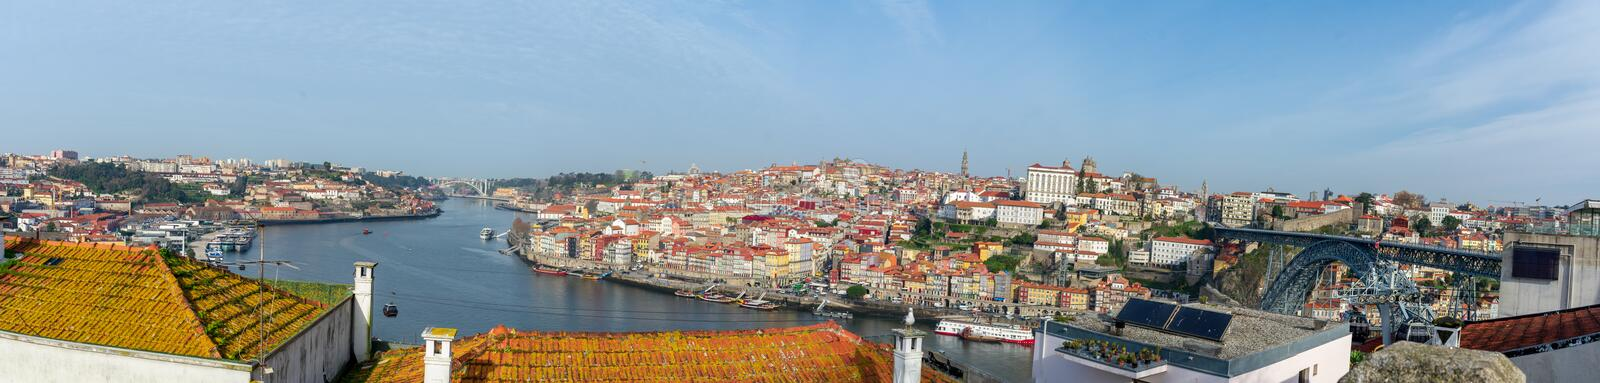 Panorama of Porto center as seen from southern bank of Douro river royalty free stock images